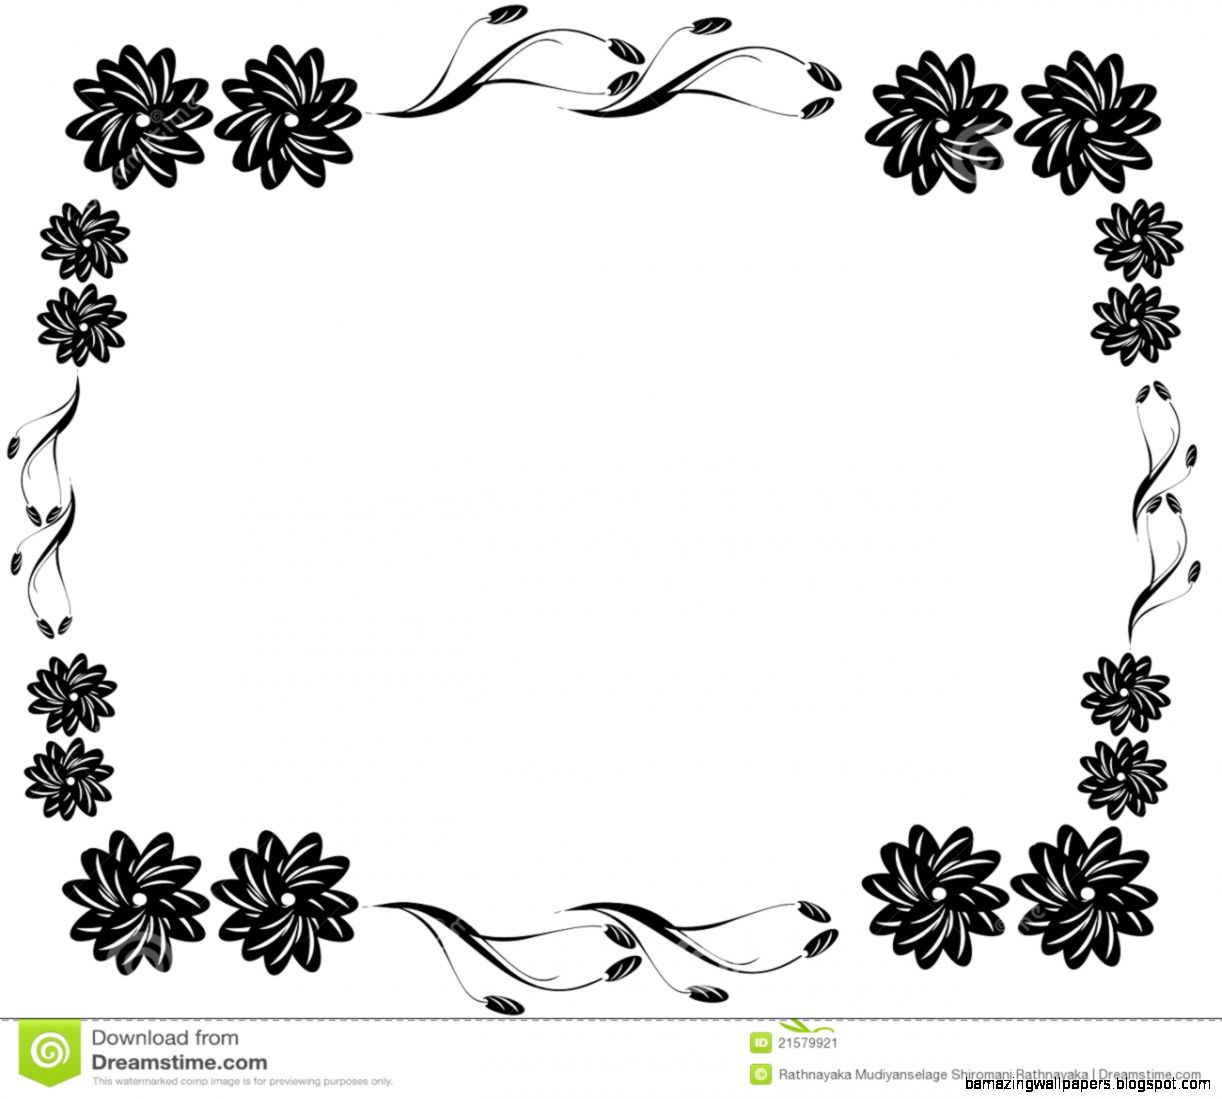 Decorative Black Flower Border Stock Image   Image 21579921